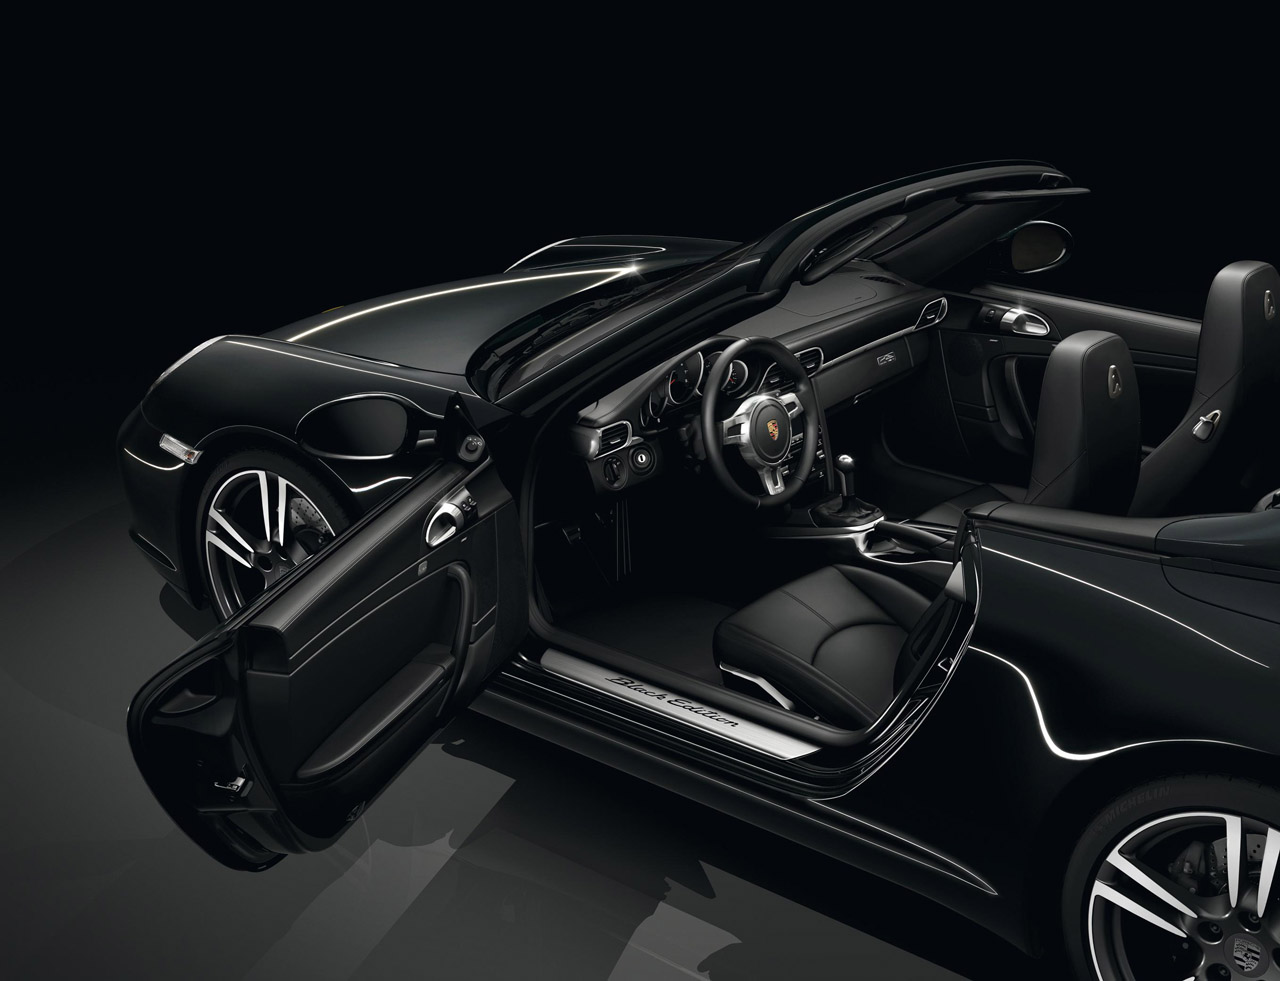 2012 PORSCHE 911 BLACK EDITION INTERIOR